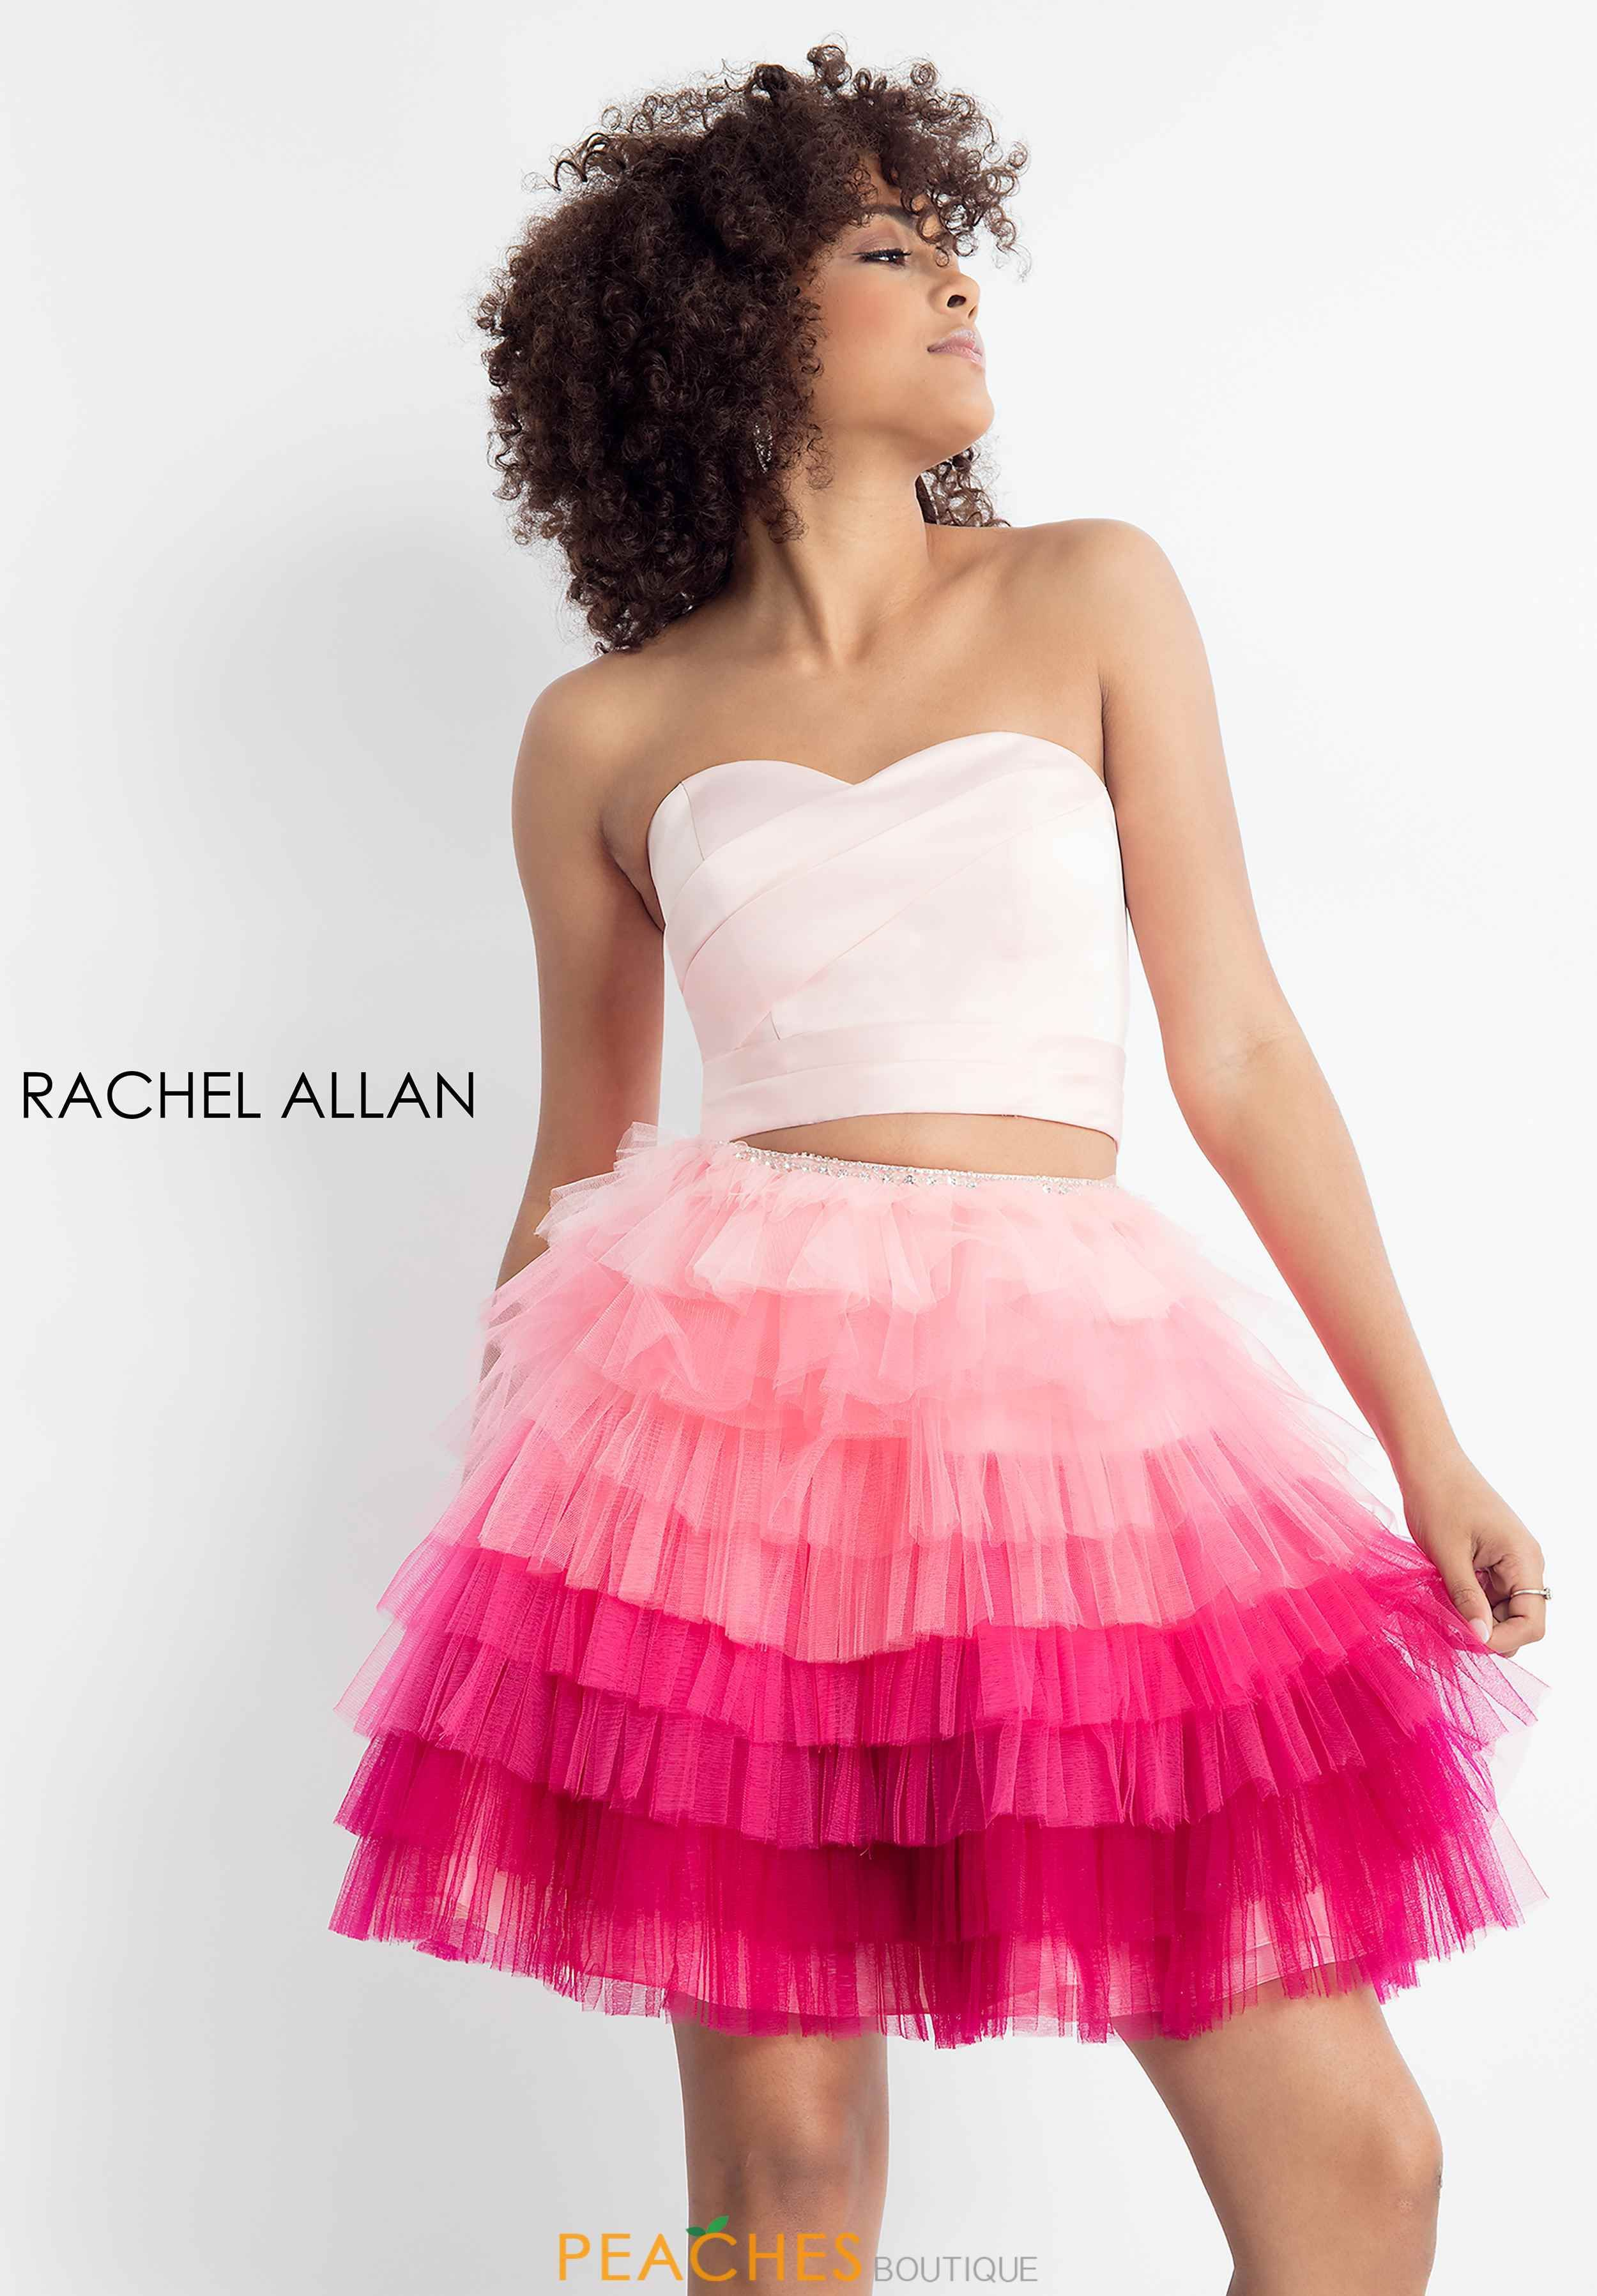 Where can you find a really cute spring dance dress?